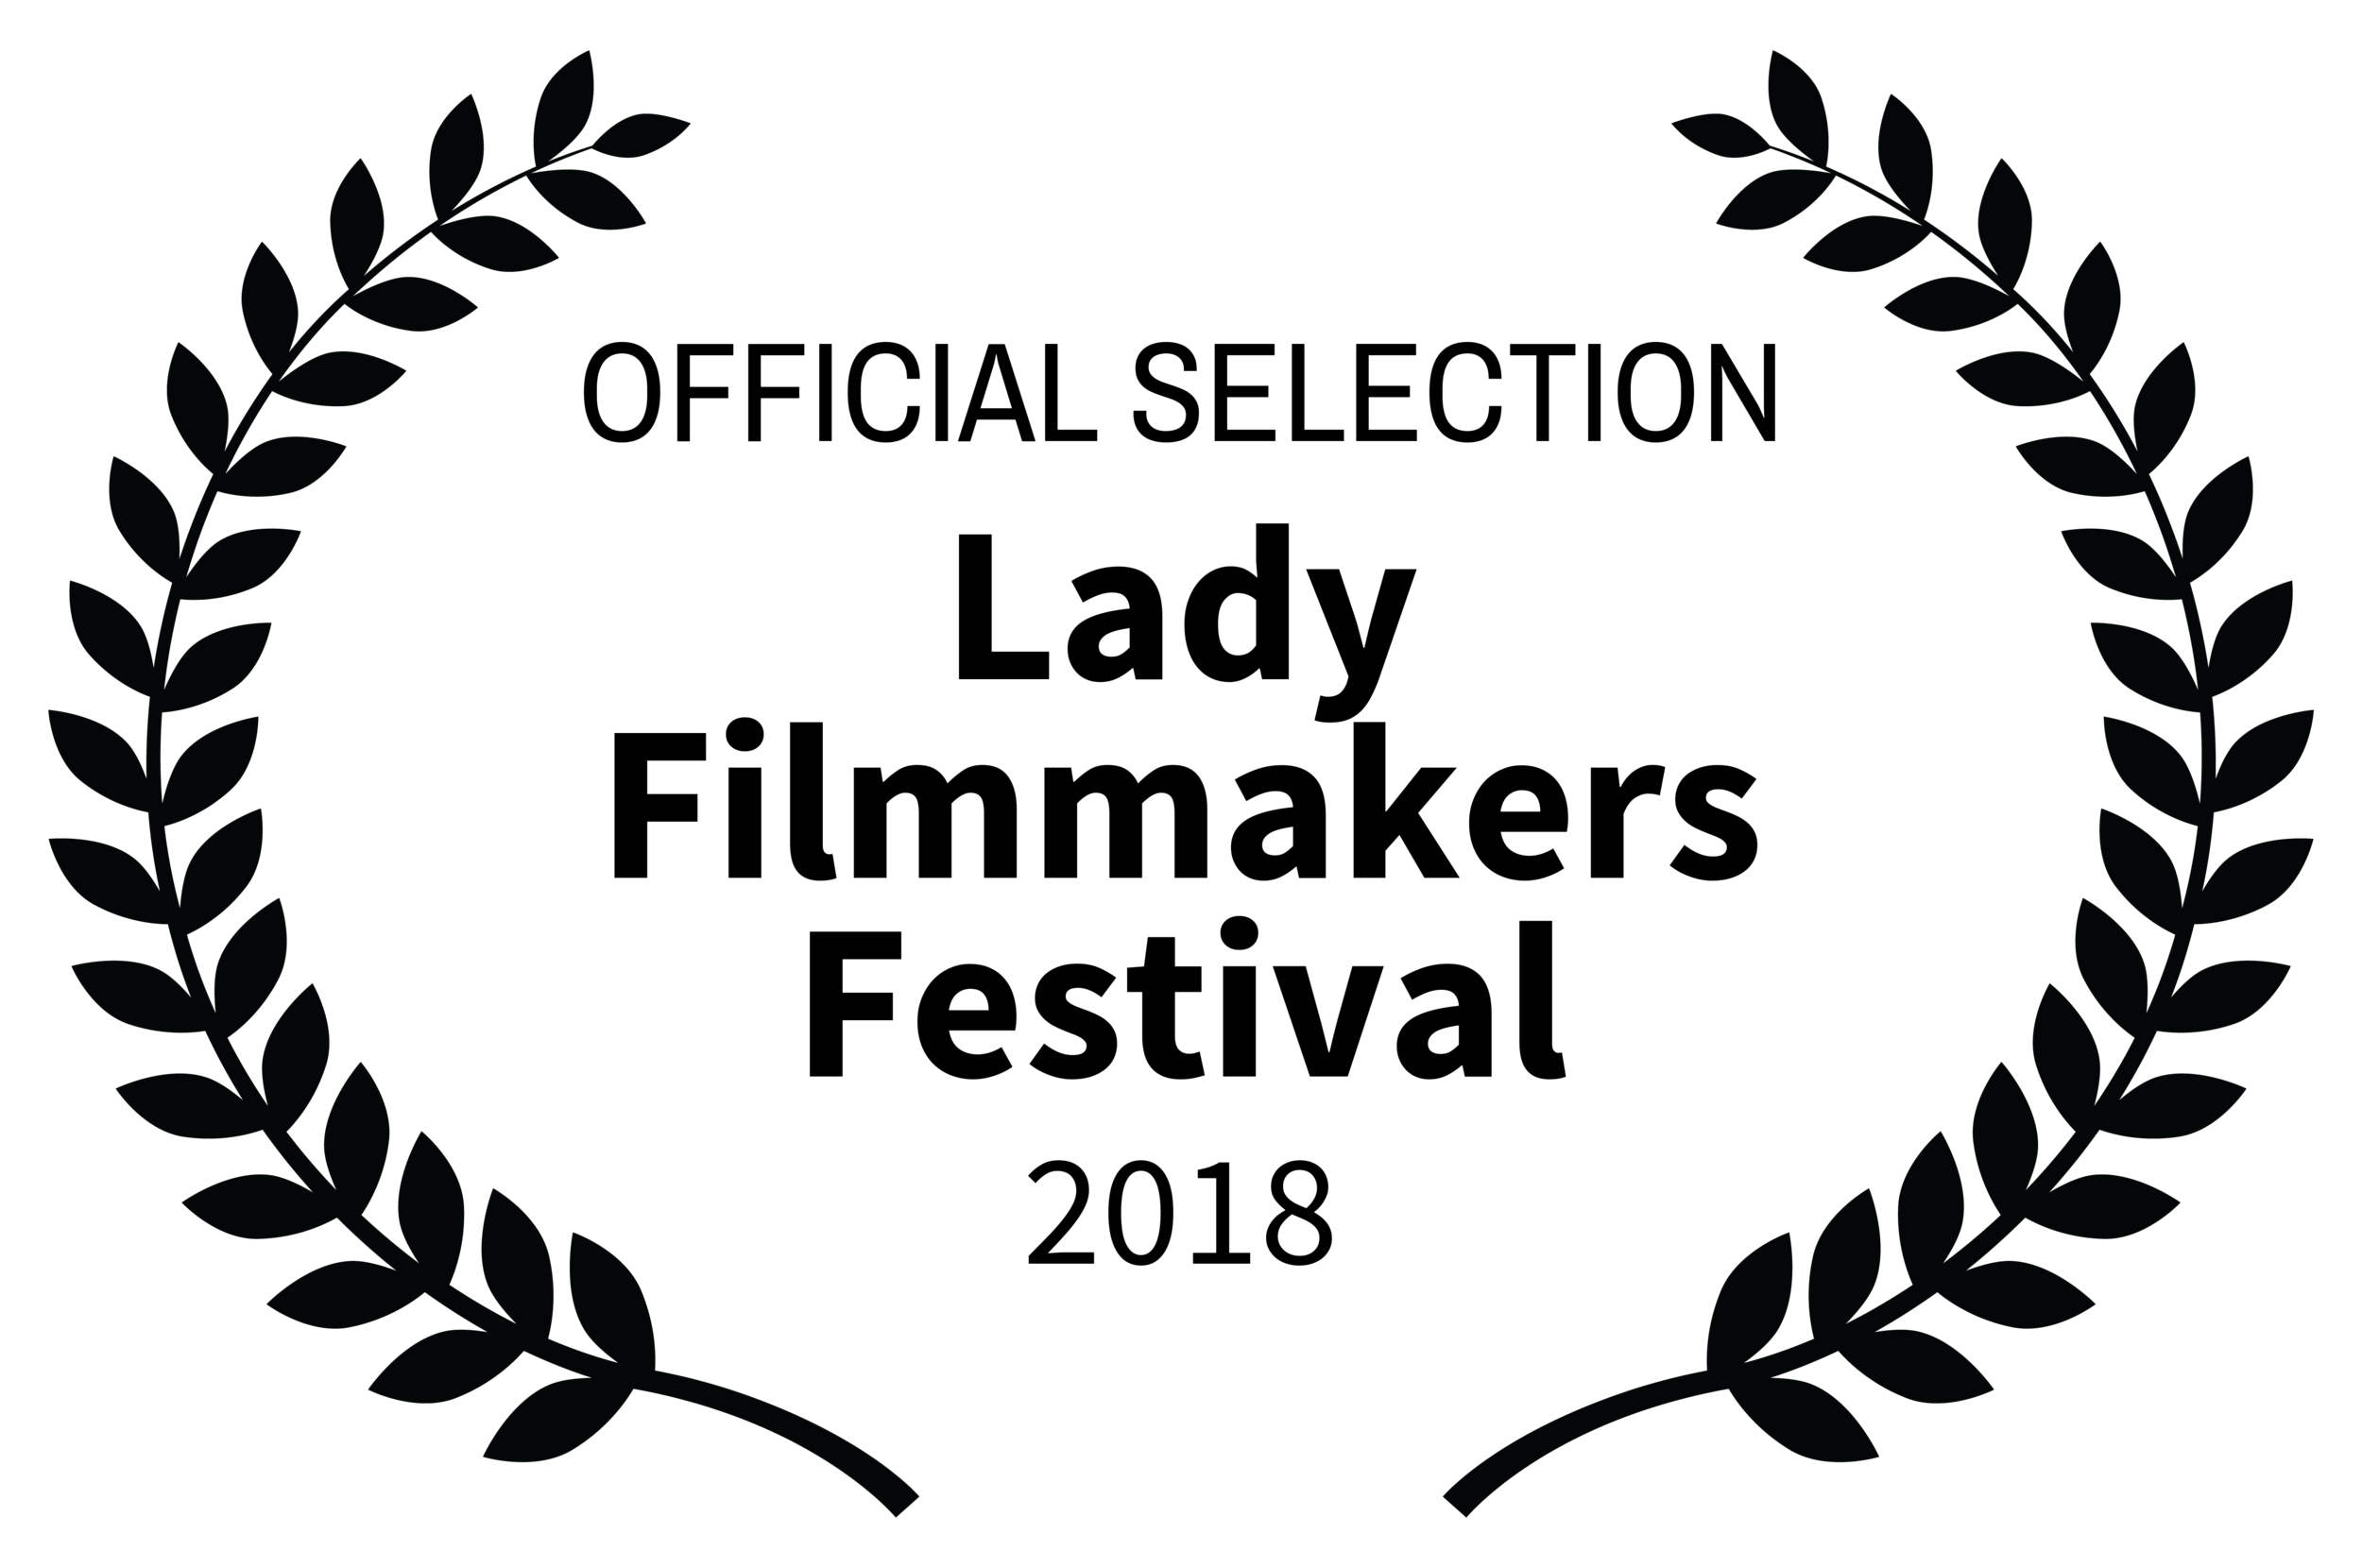 OFFICIALSELECTION-LadyFilmmakersFestival-2018 (1).png